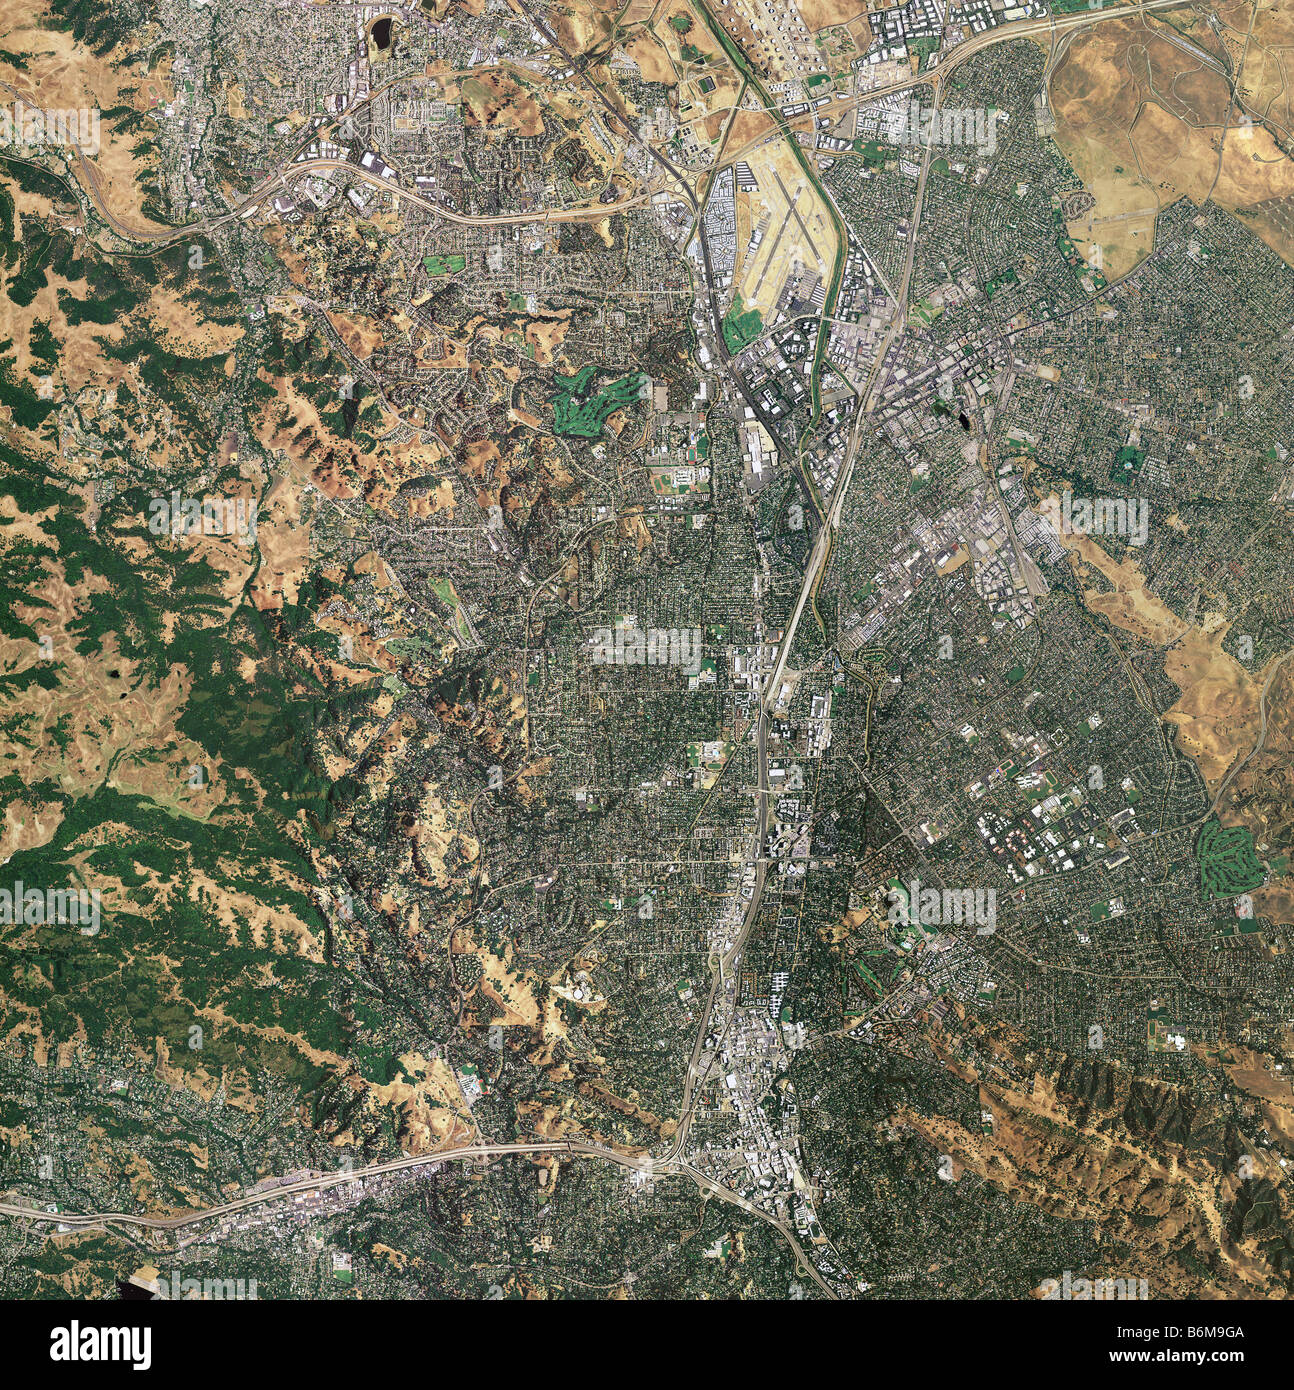 aerial map view Walnut Creek and Concord California - Stock Image